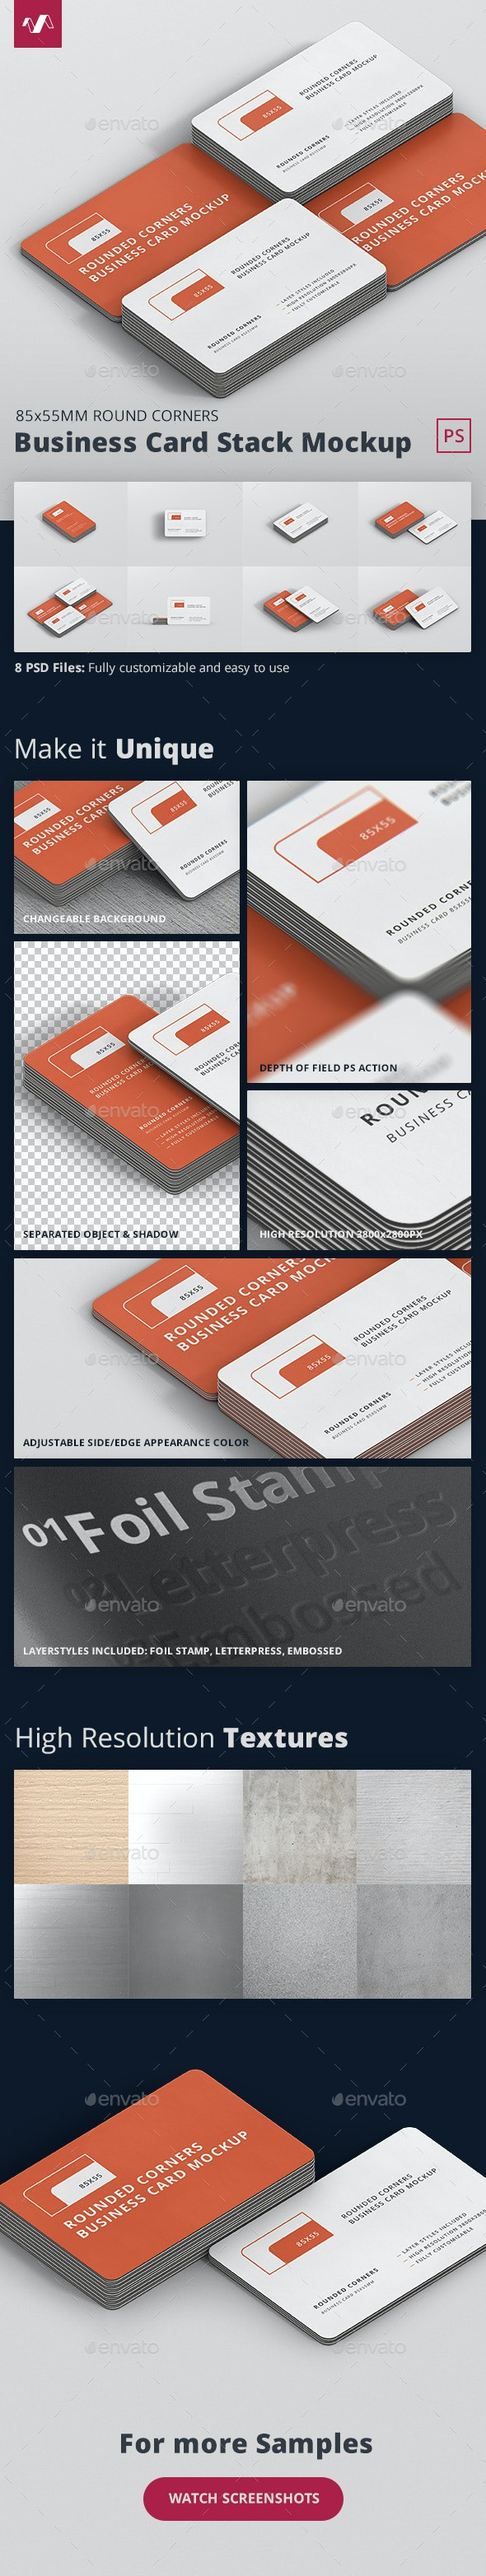 Business Card Mockup Stack Round Corners - Business Cards Print